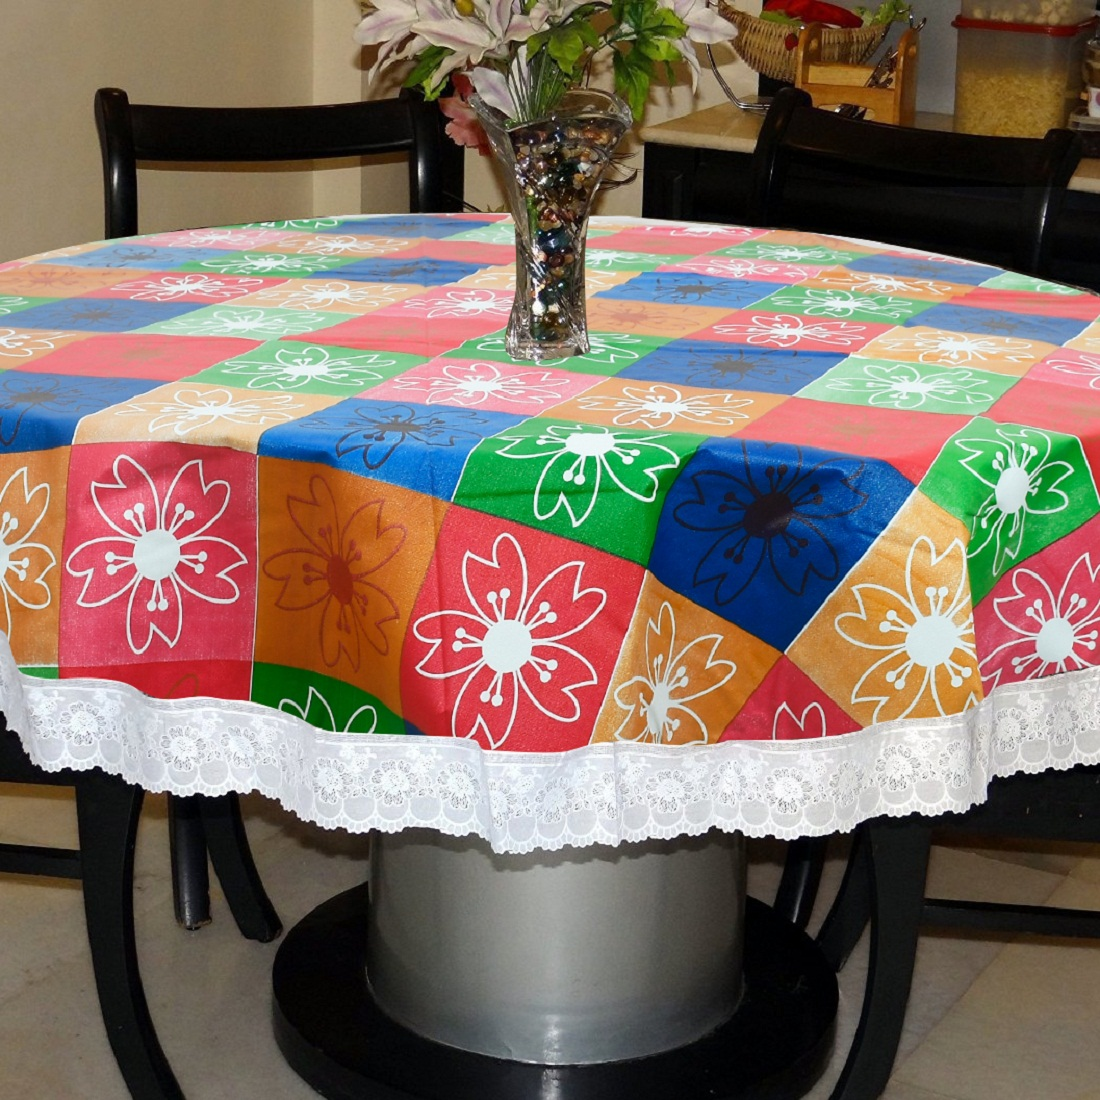 Kuber Industries Flower Print Round Table Cover 60 Inch Waterproof Pvc Resistant Spillproof Pvc Fabric Table Cover For Dining Room Kitchen Party Mult